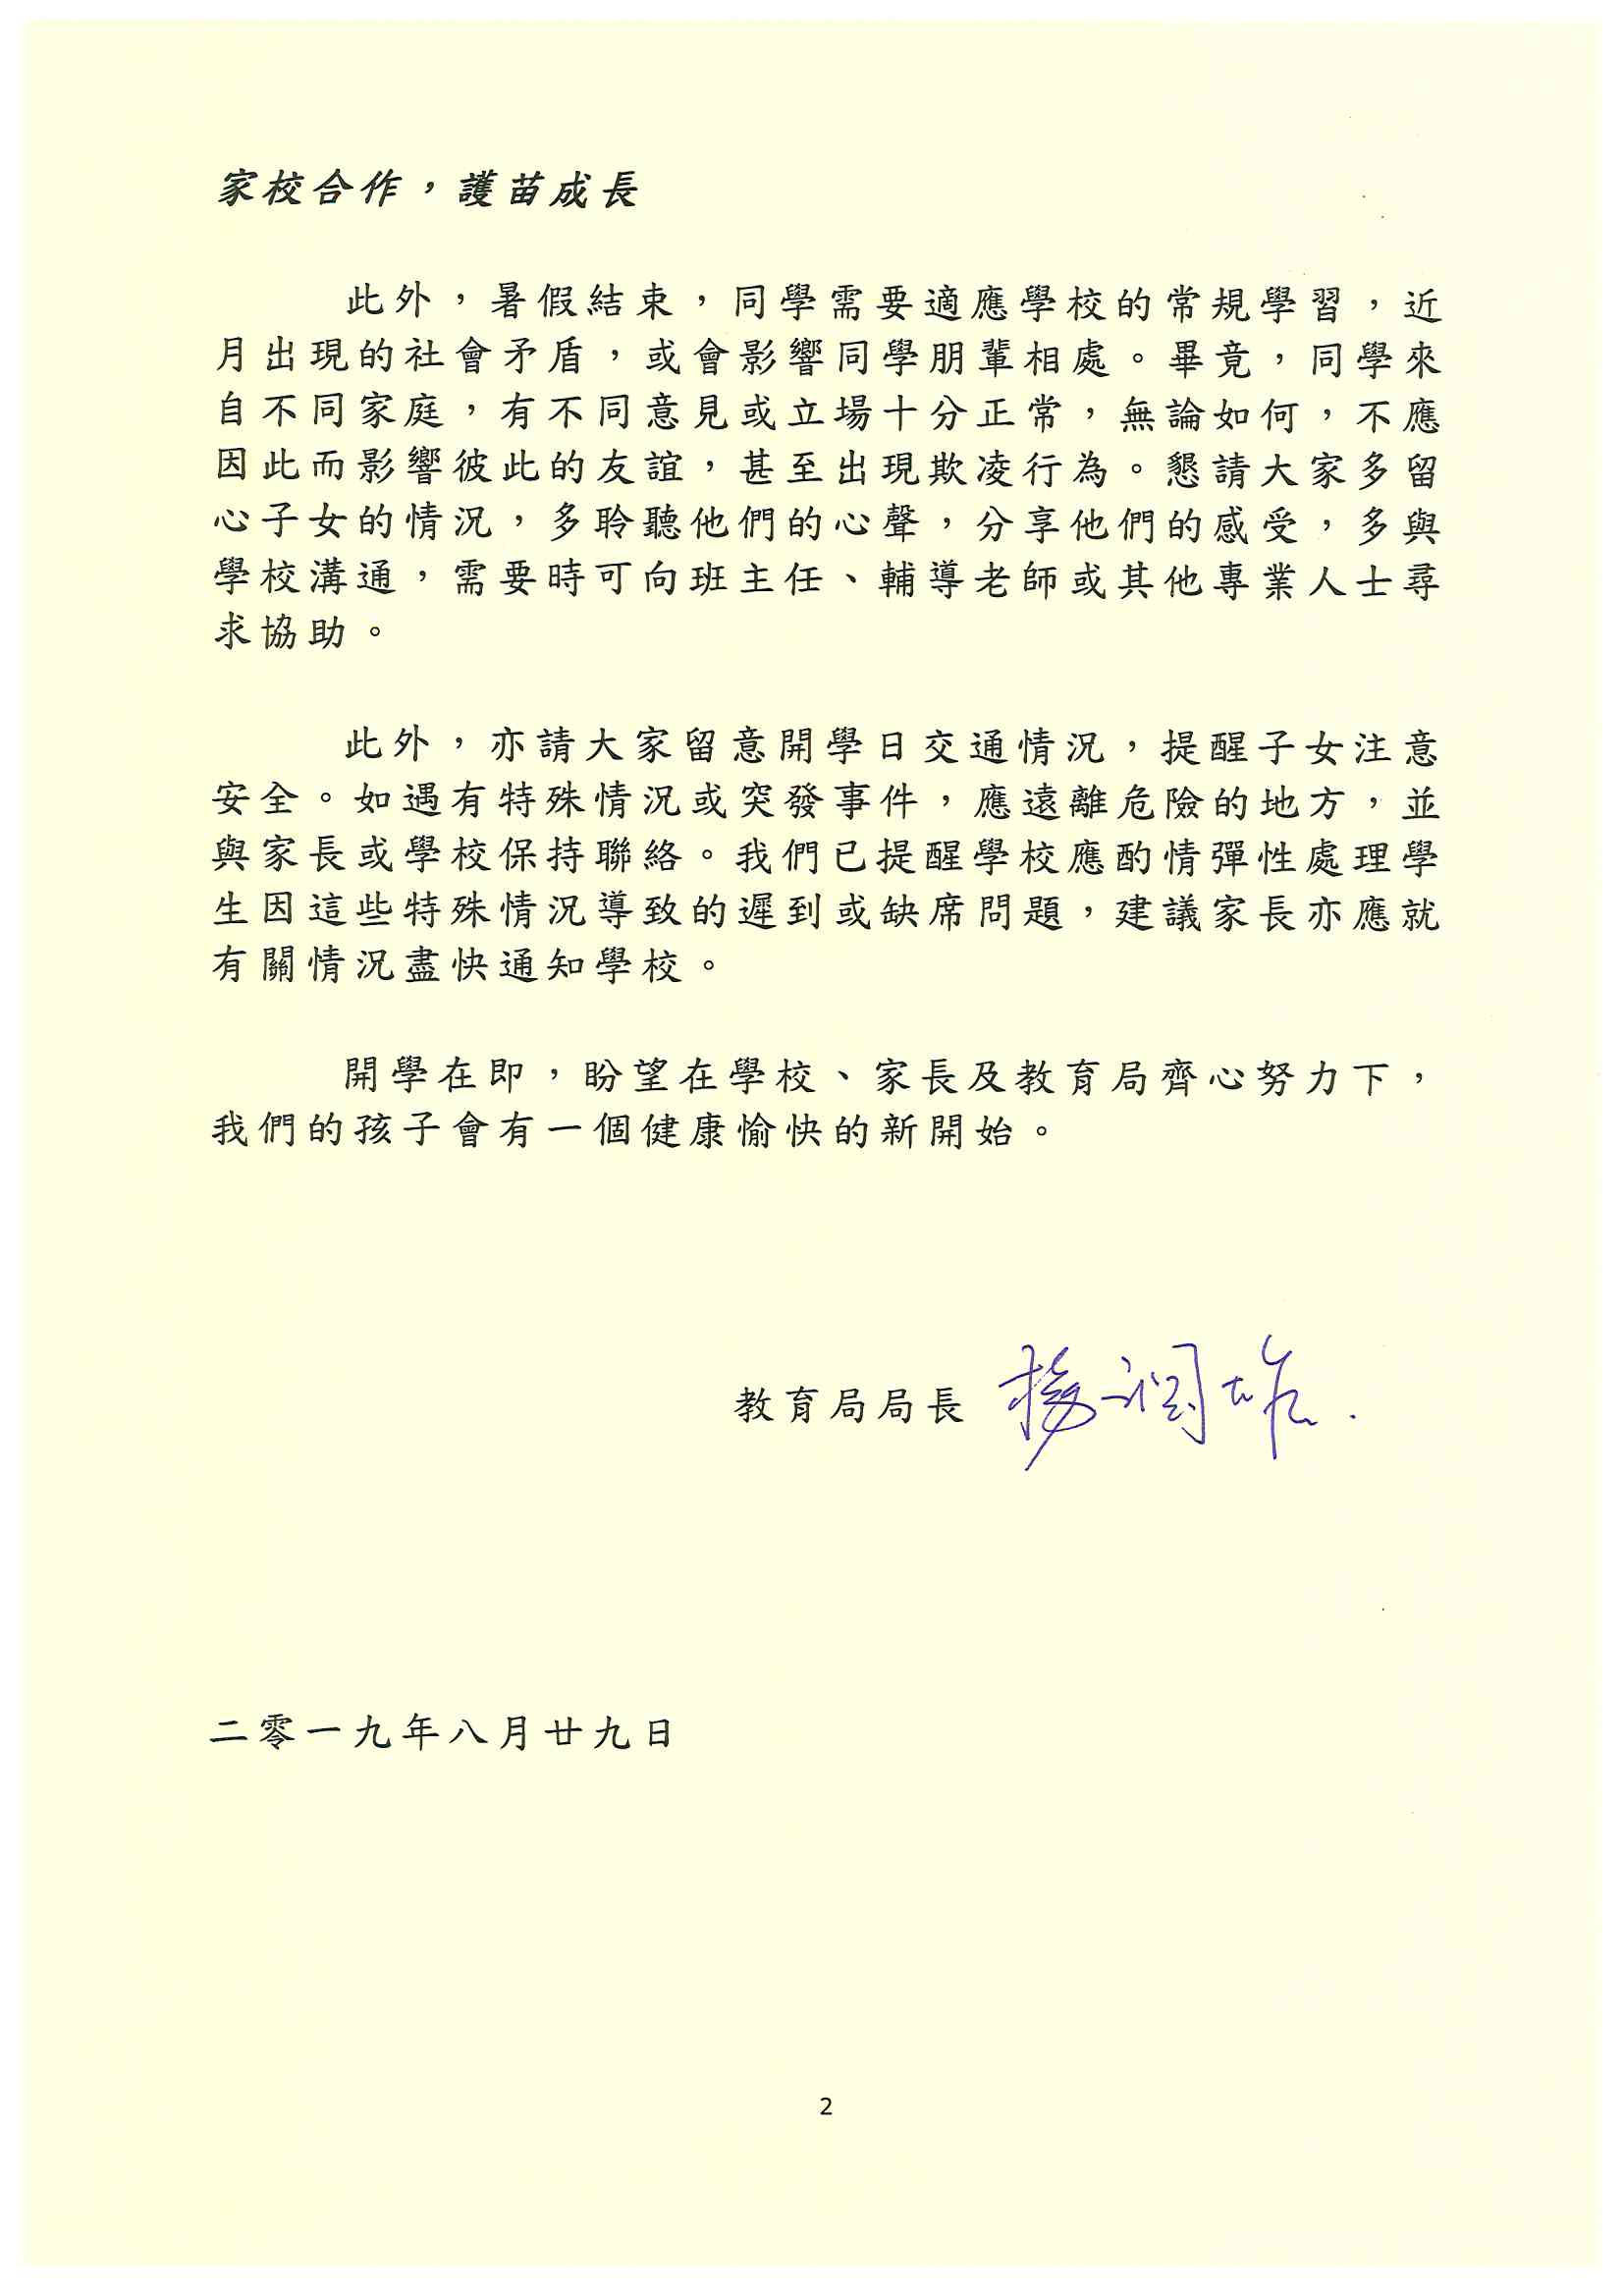 SED letter to parents 29 Aug 2019 Chi Received on 29.08.20190334PM 頁面 2